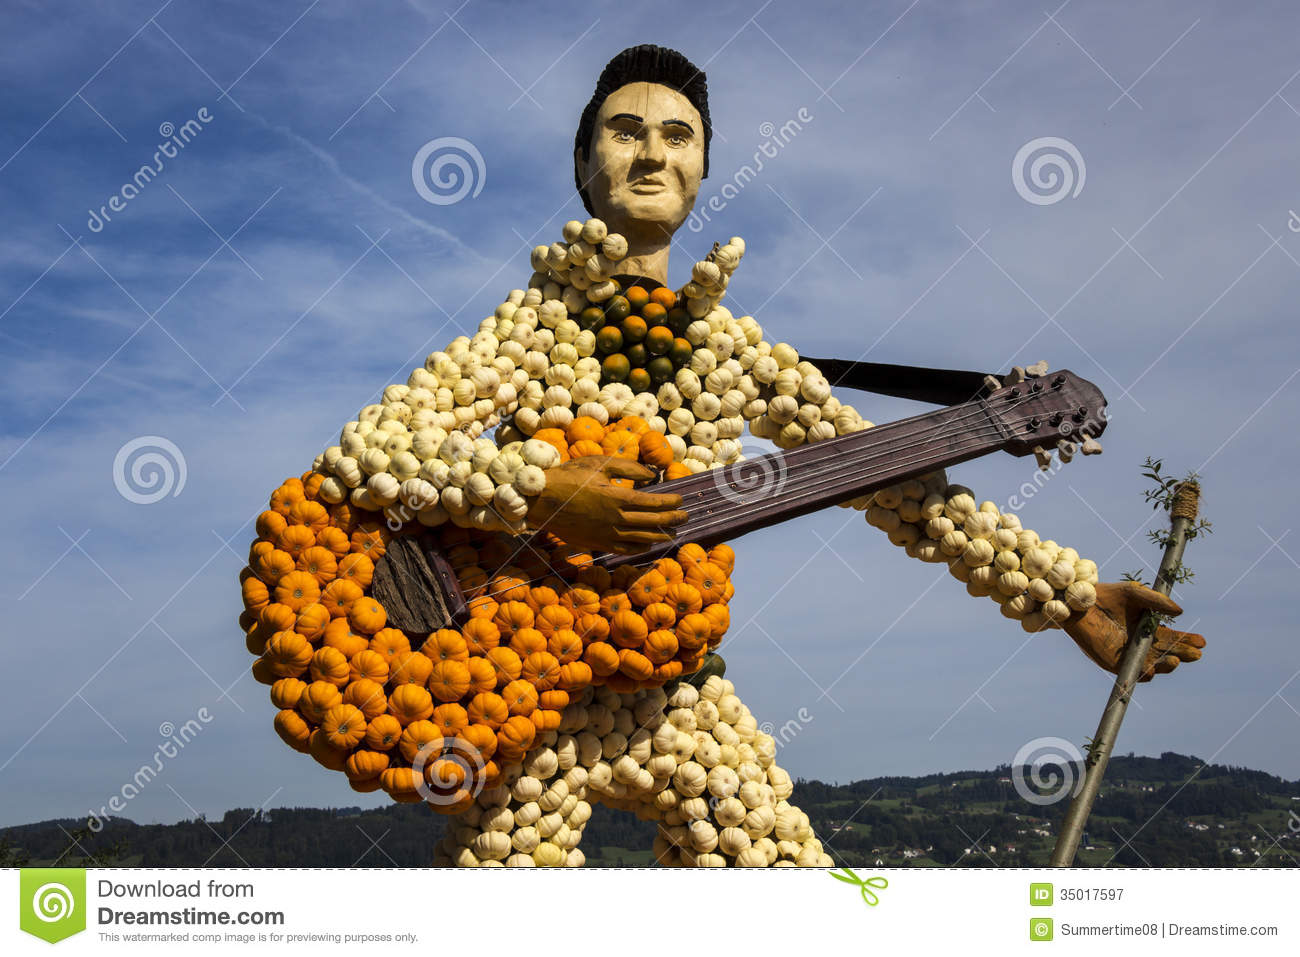 Farm art guitar and guitarist made of small orange, green and white pumpkins